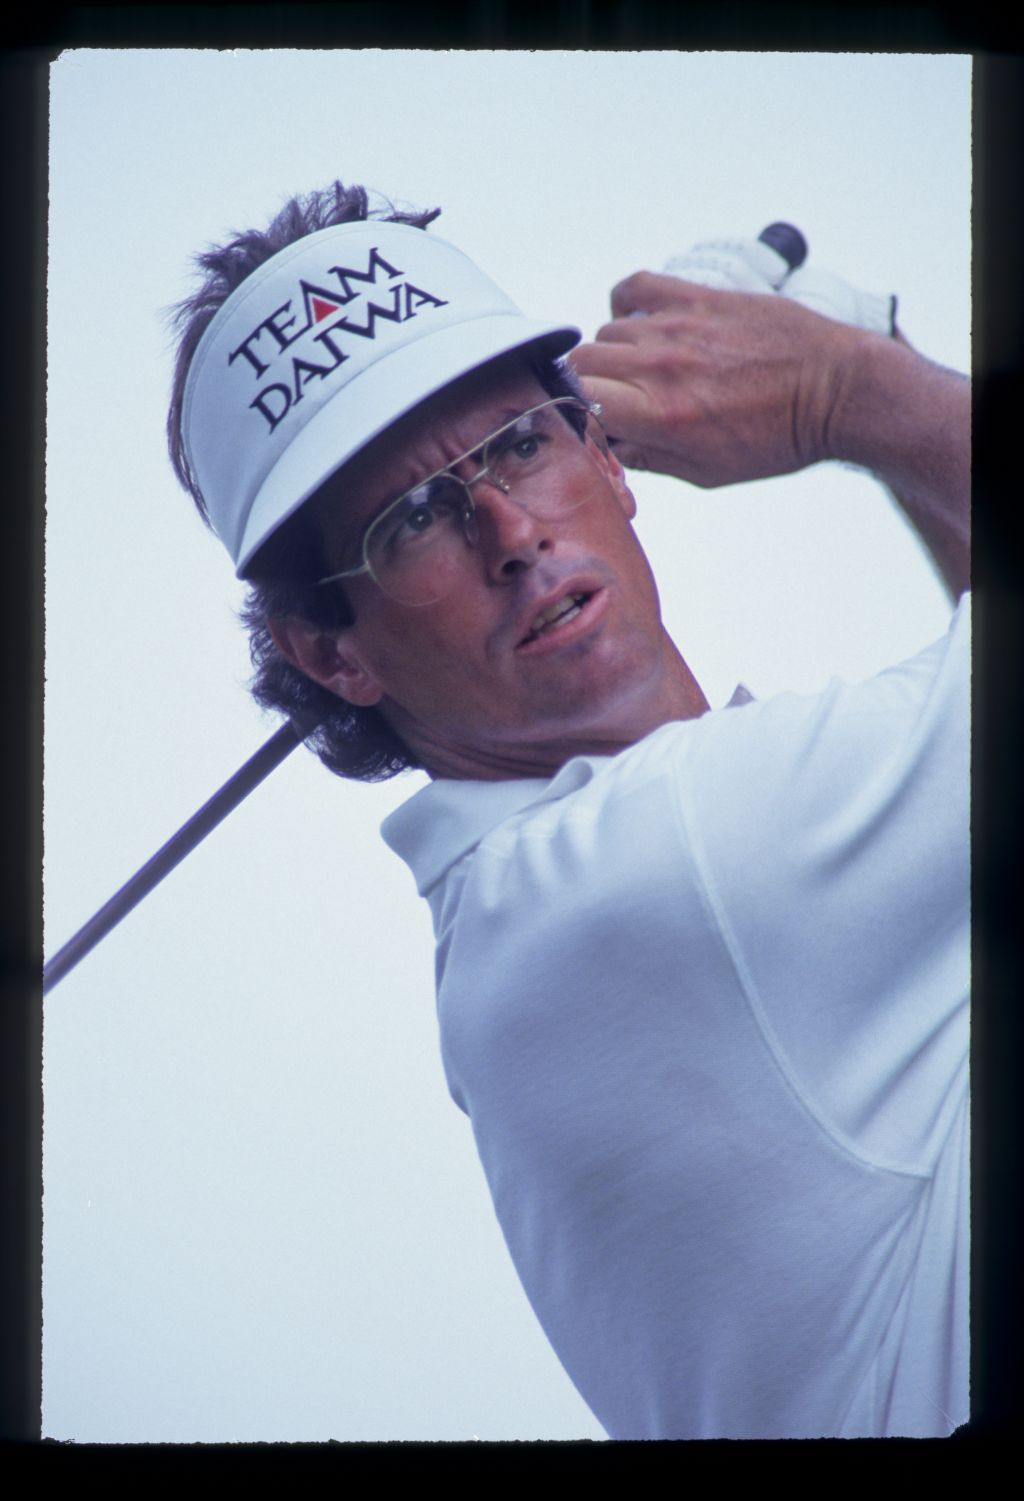 Ian Baker Finch watching his shot closely during the 1993 US Open